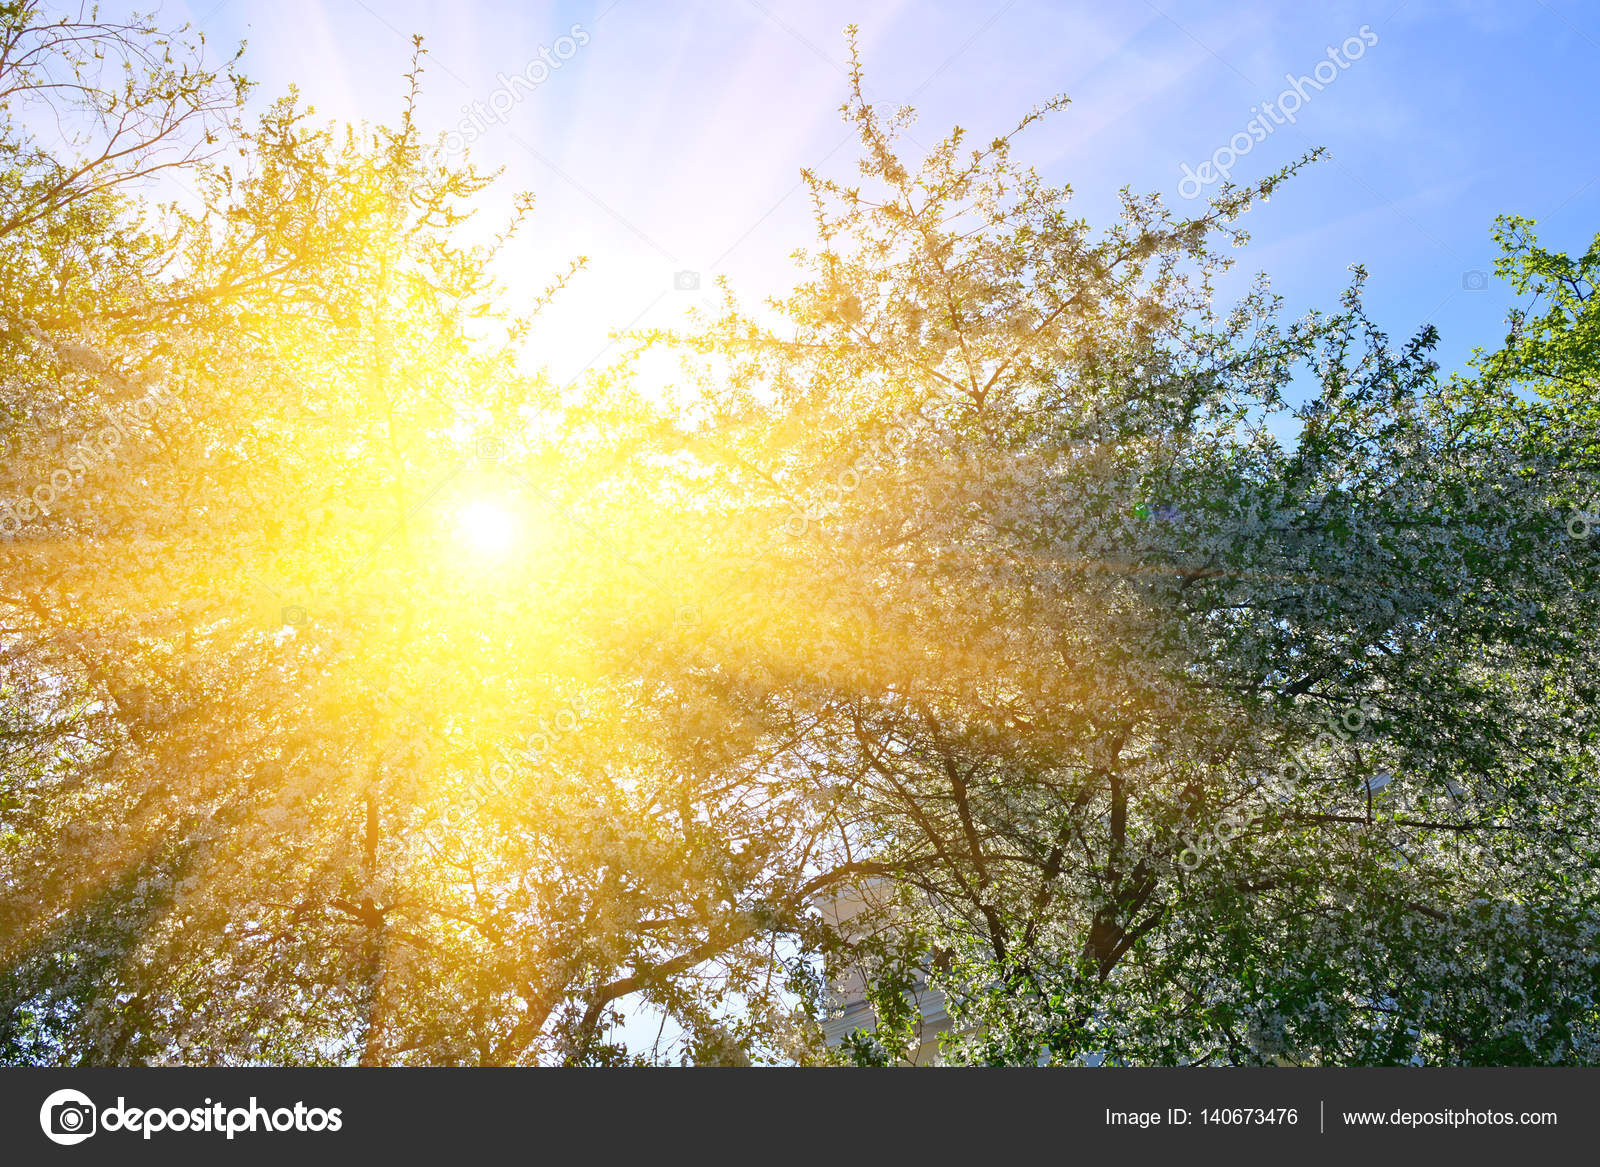 Cherry Tree Blooms And Sun In Background Of Green Branches Early